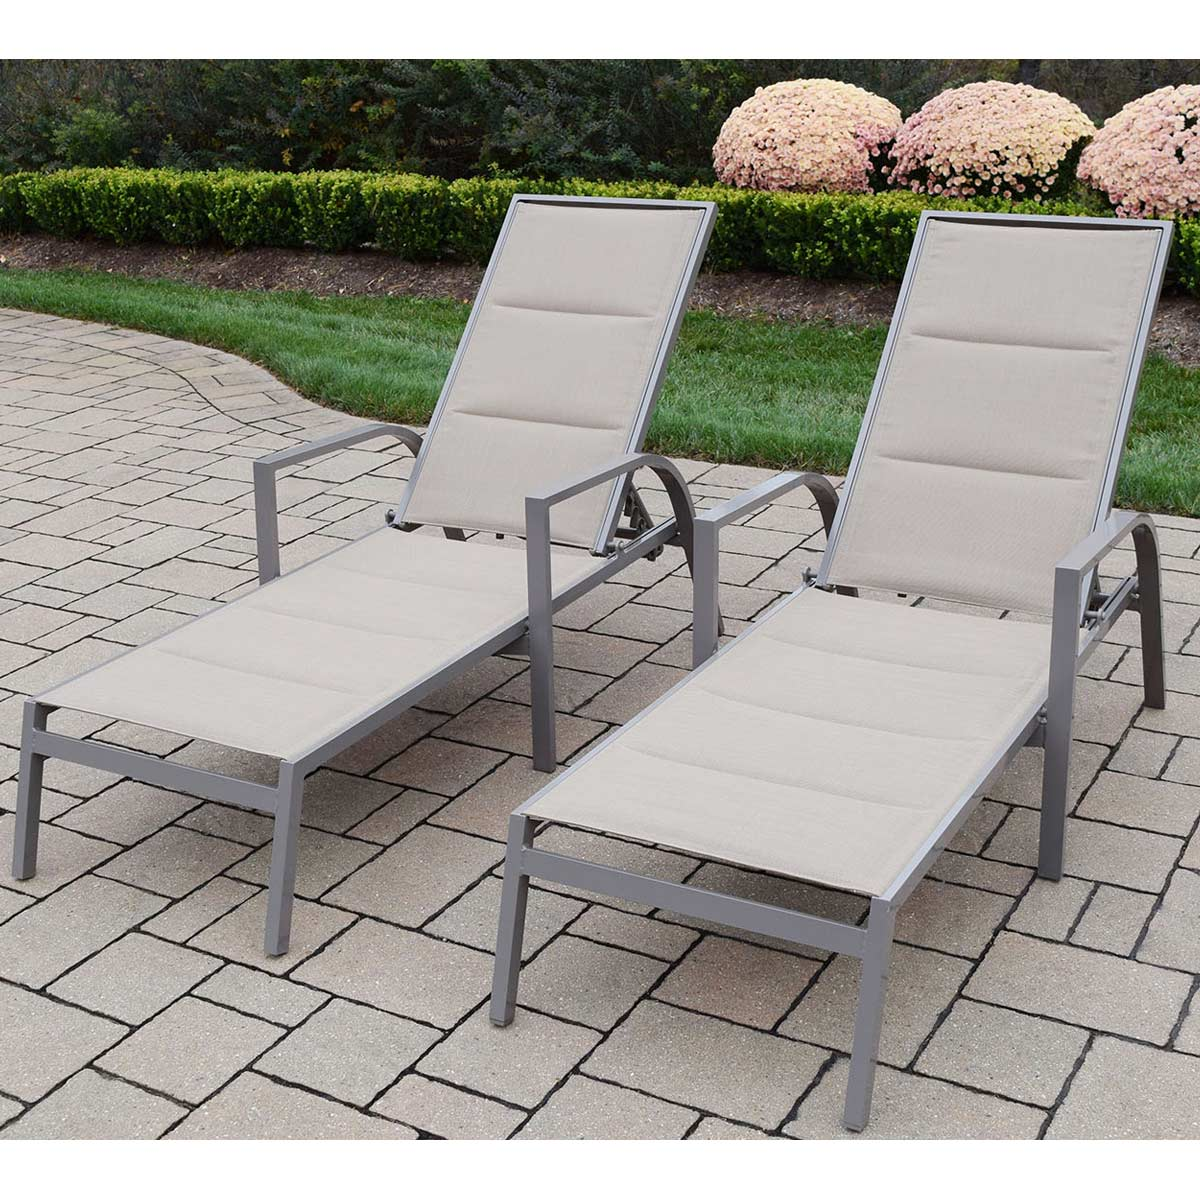 Oakland living padded sling aluminum chaise lounges set for Chaise longue aluminium